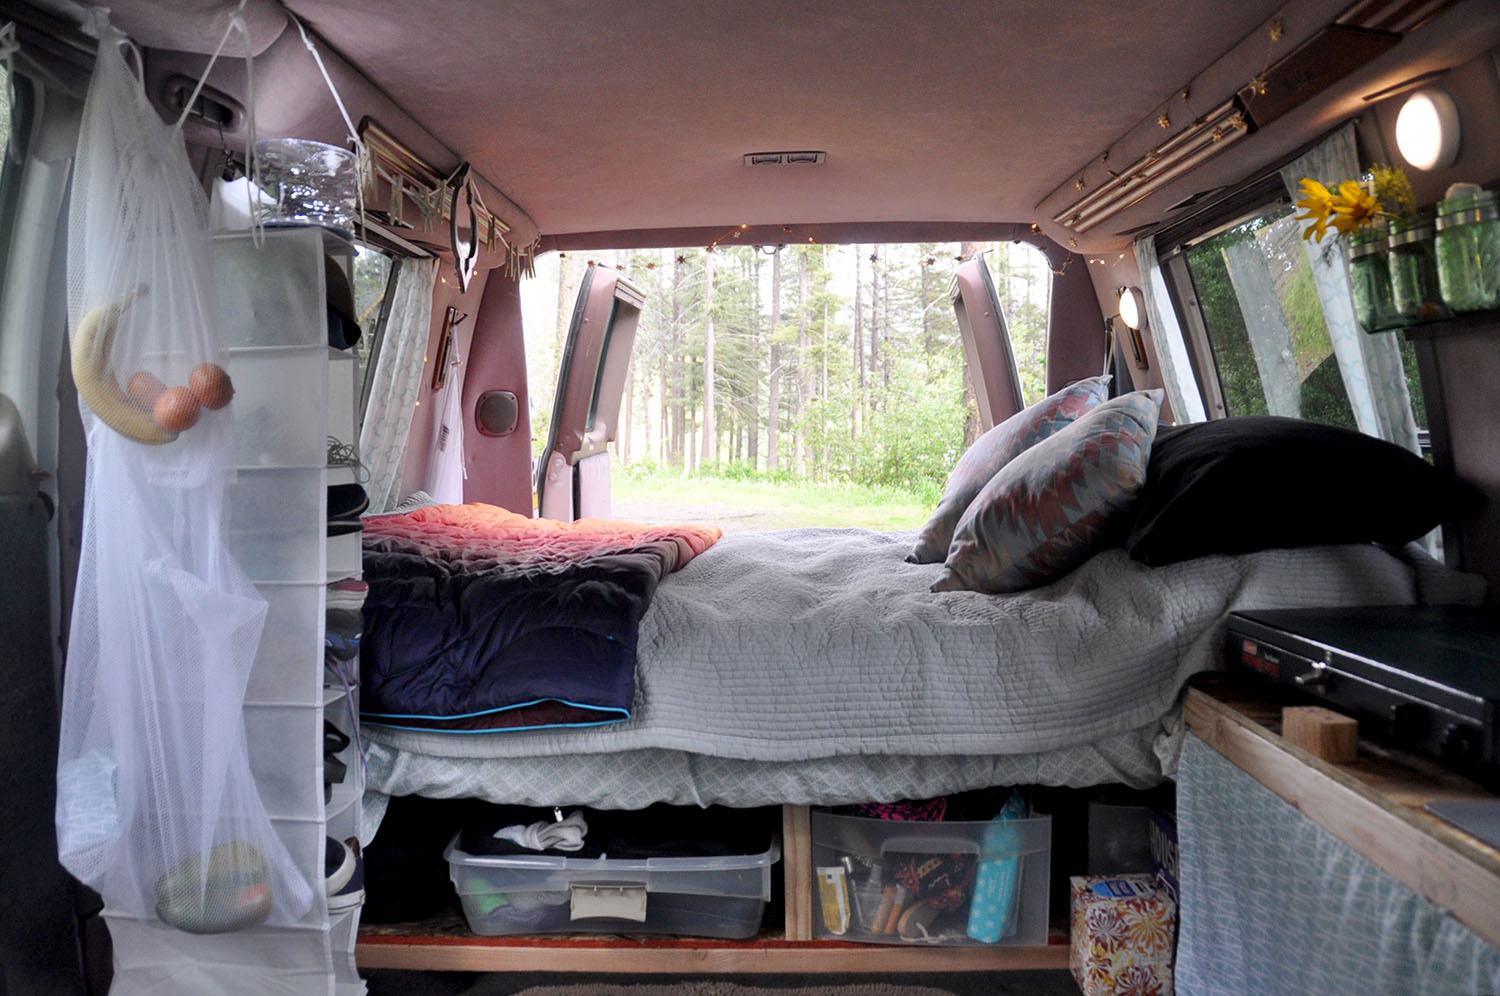 DIY Campervan Bed Frame with Built-in Storage